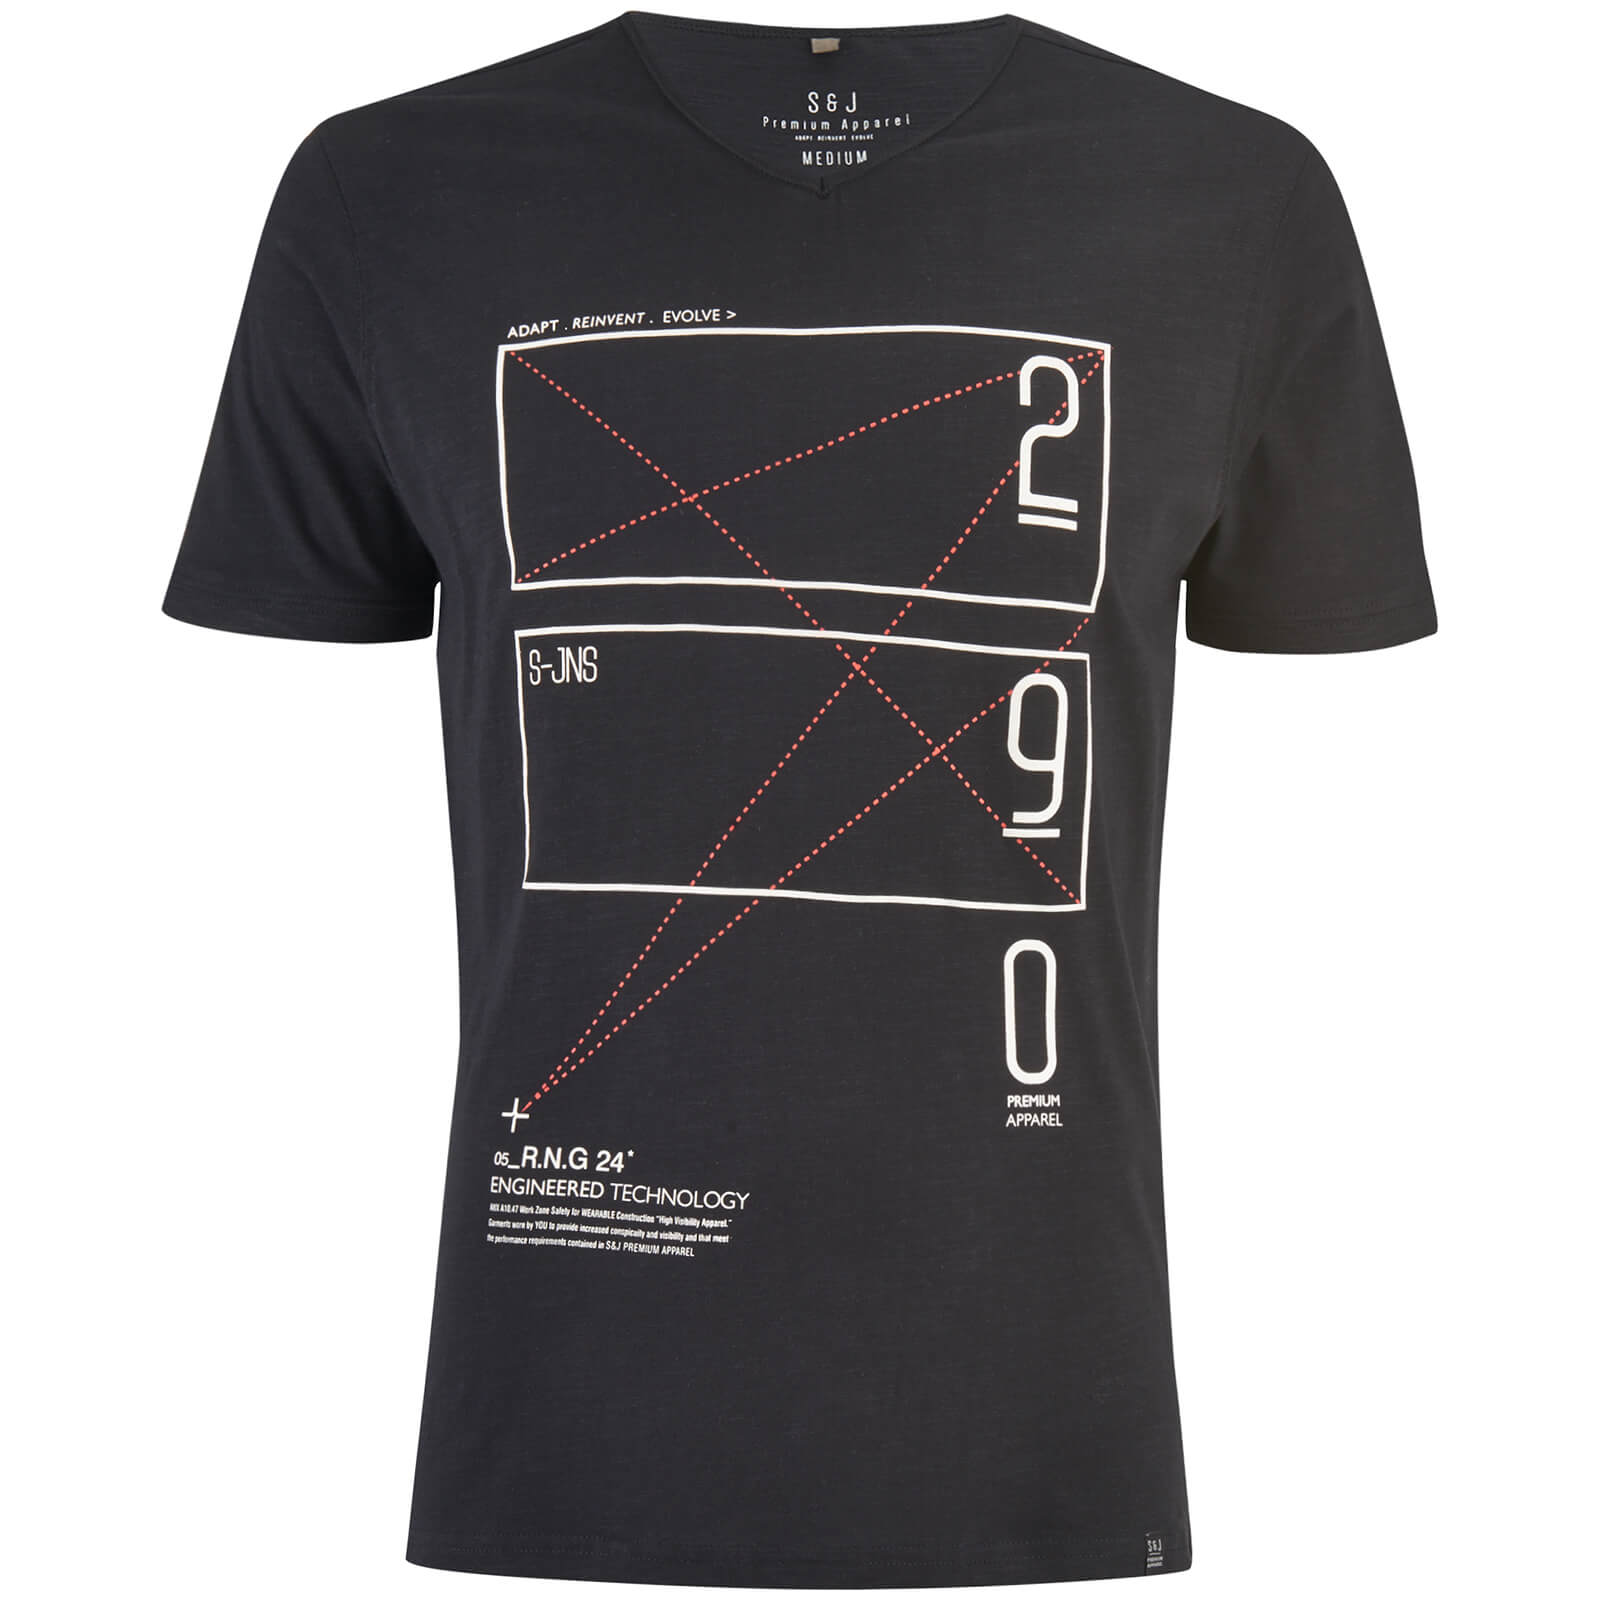 T-Shirt Homme Kapola Smith & Jones -Noir